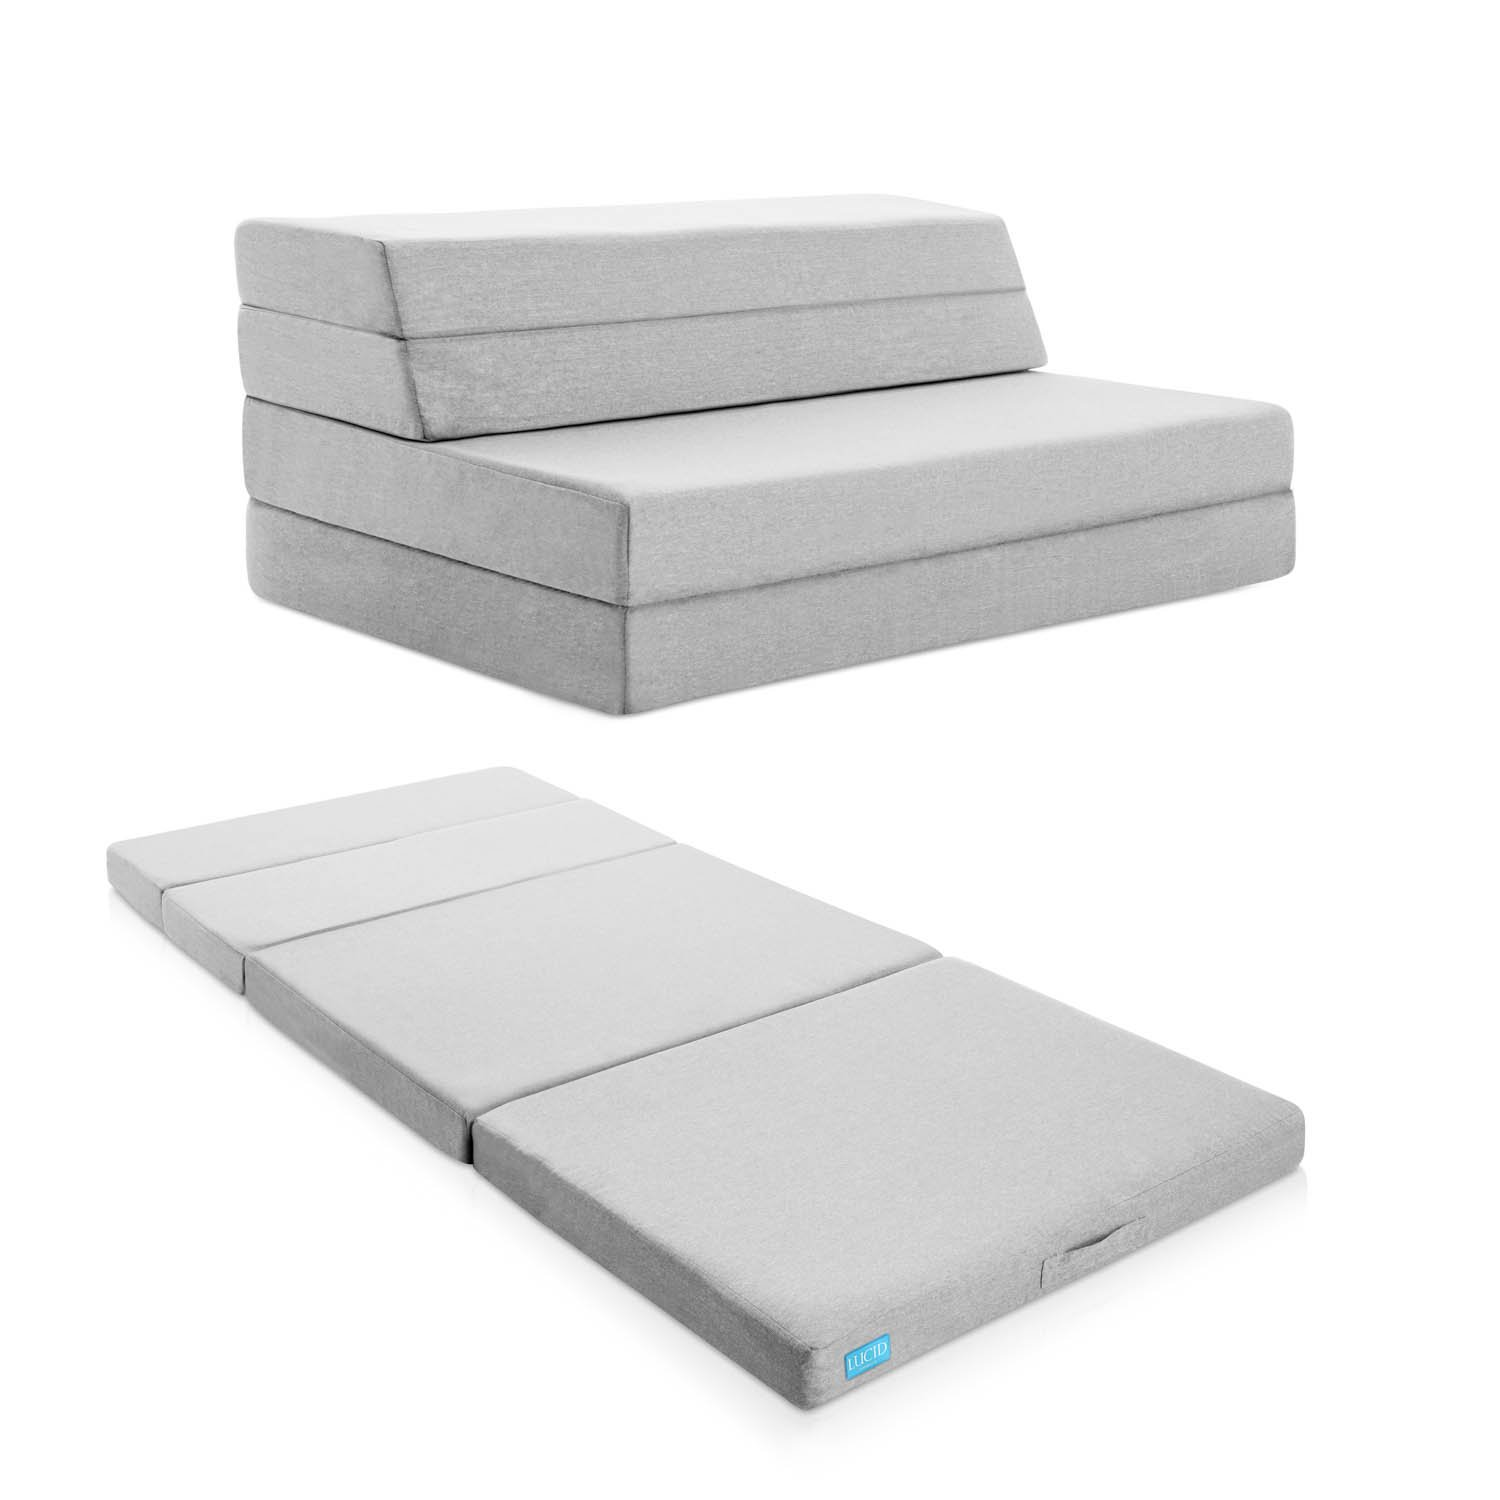 "Lucid 4"" Folding Mattress & Sofa with Removable Indoor/Outdoor Fabric Cover, Full"